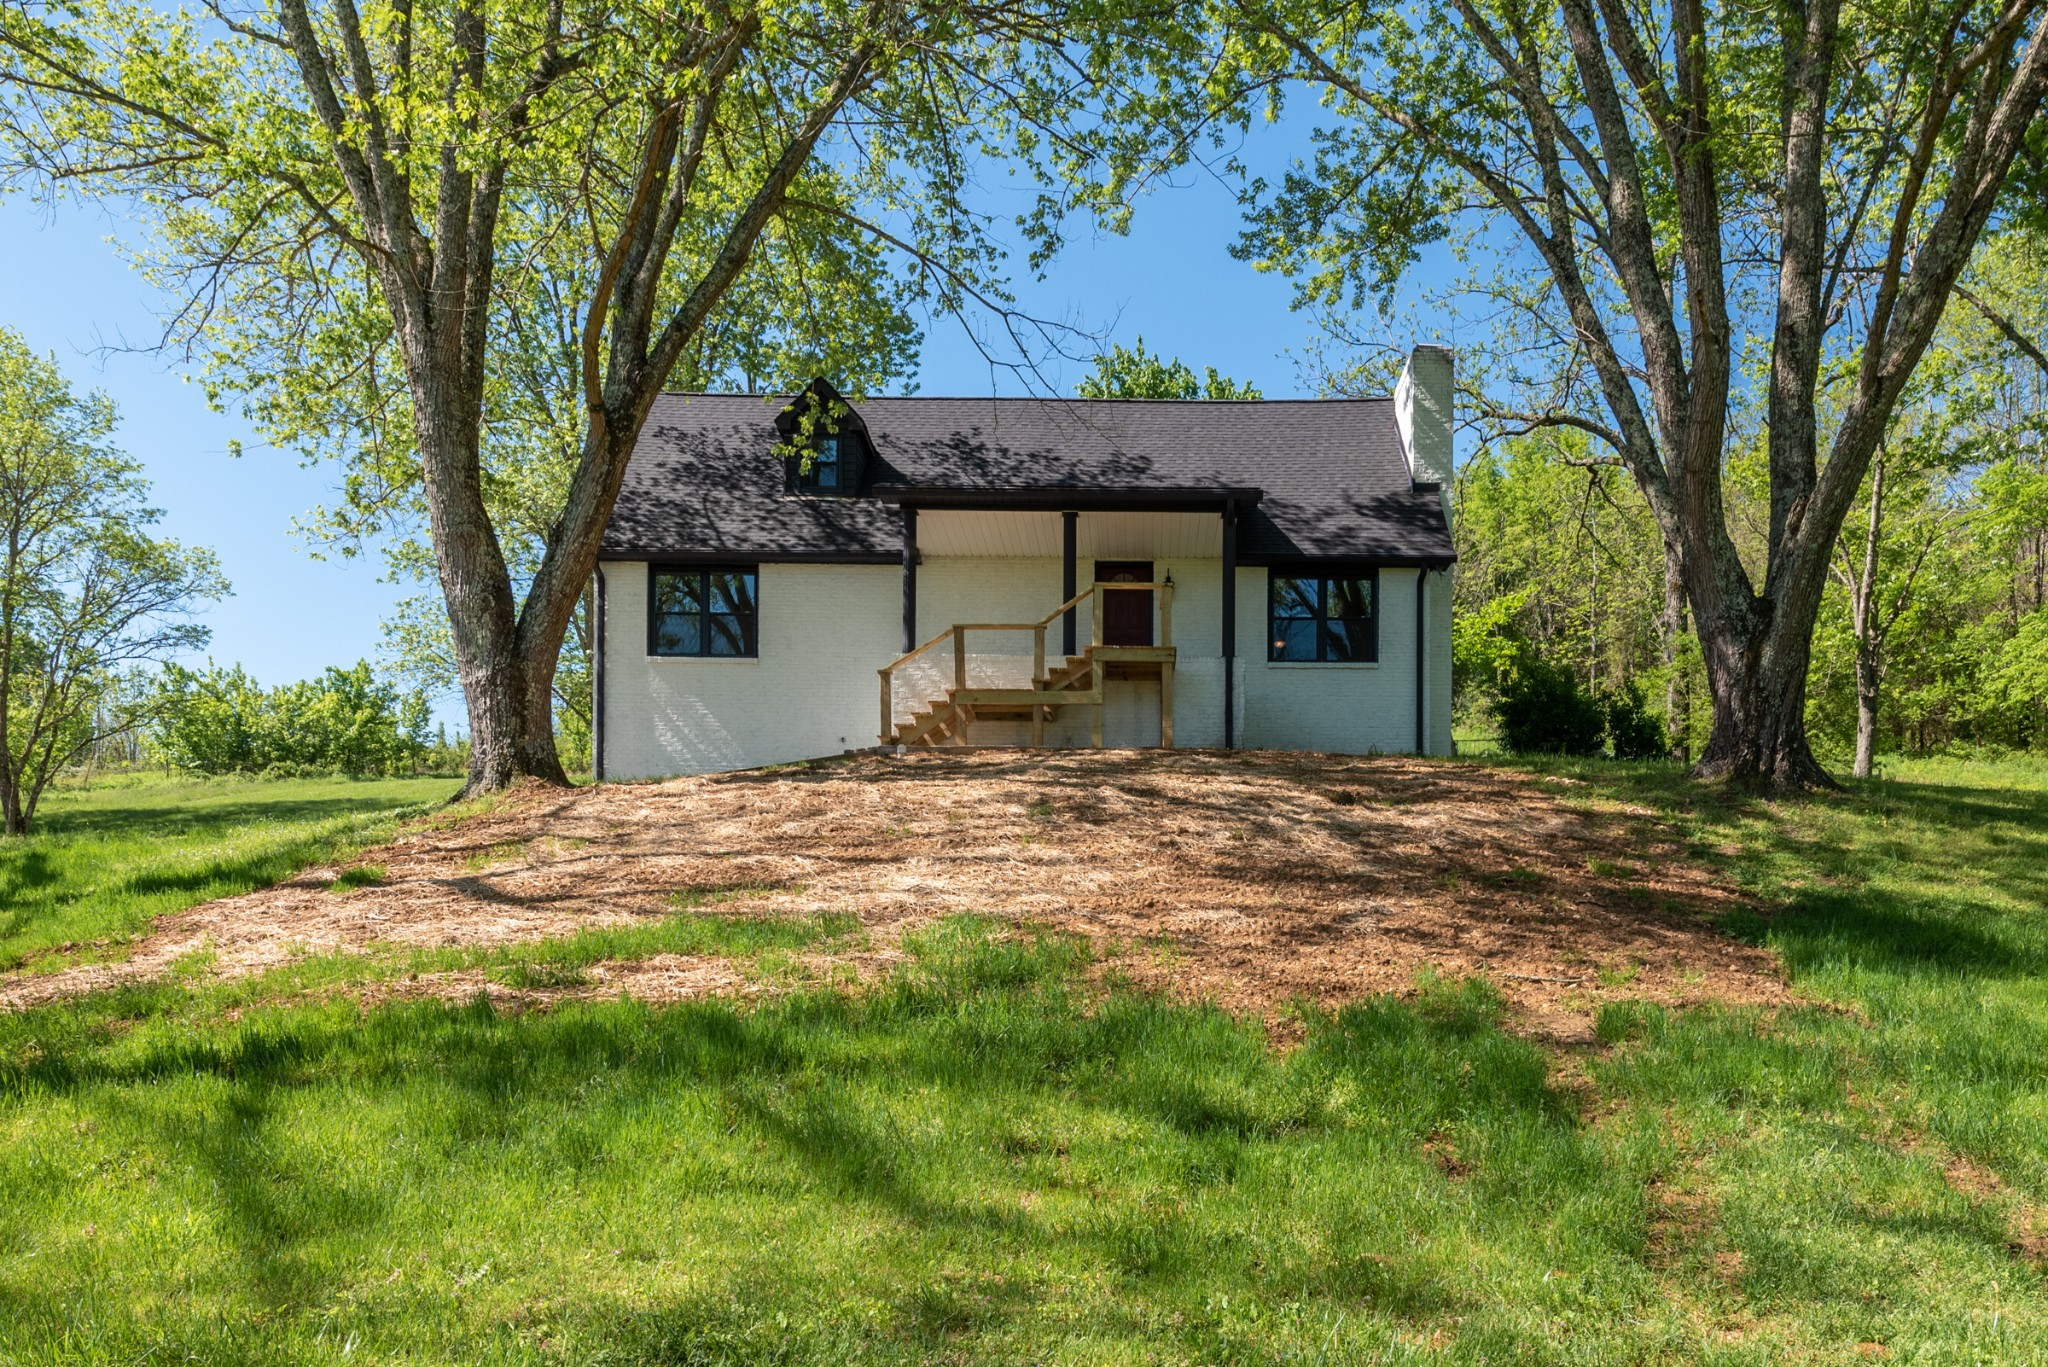 203 Vantrease Rd, Cottontown, TN 37048 - Cottontown, TN real estate listing